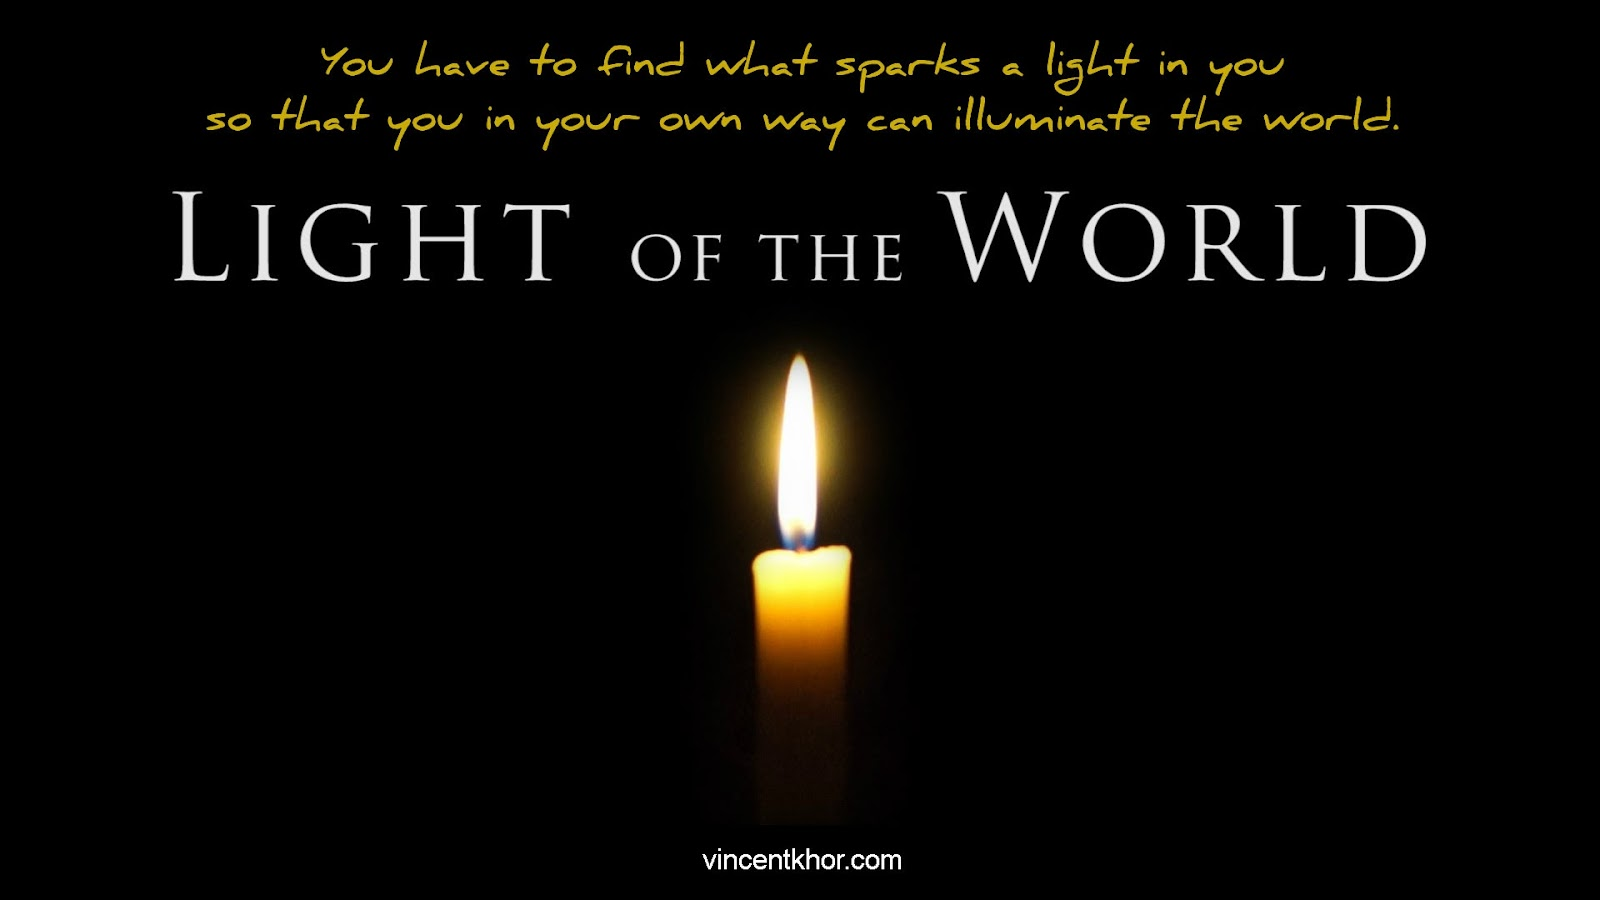 inspirational quote 17 light of the world vincent khor